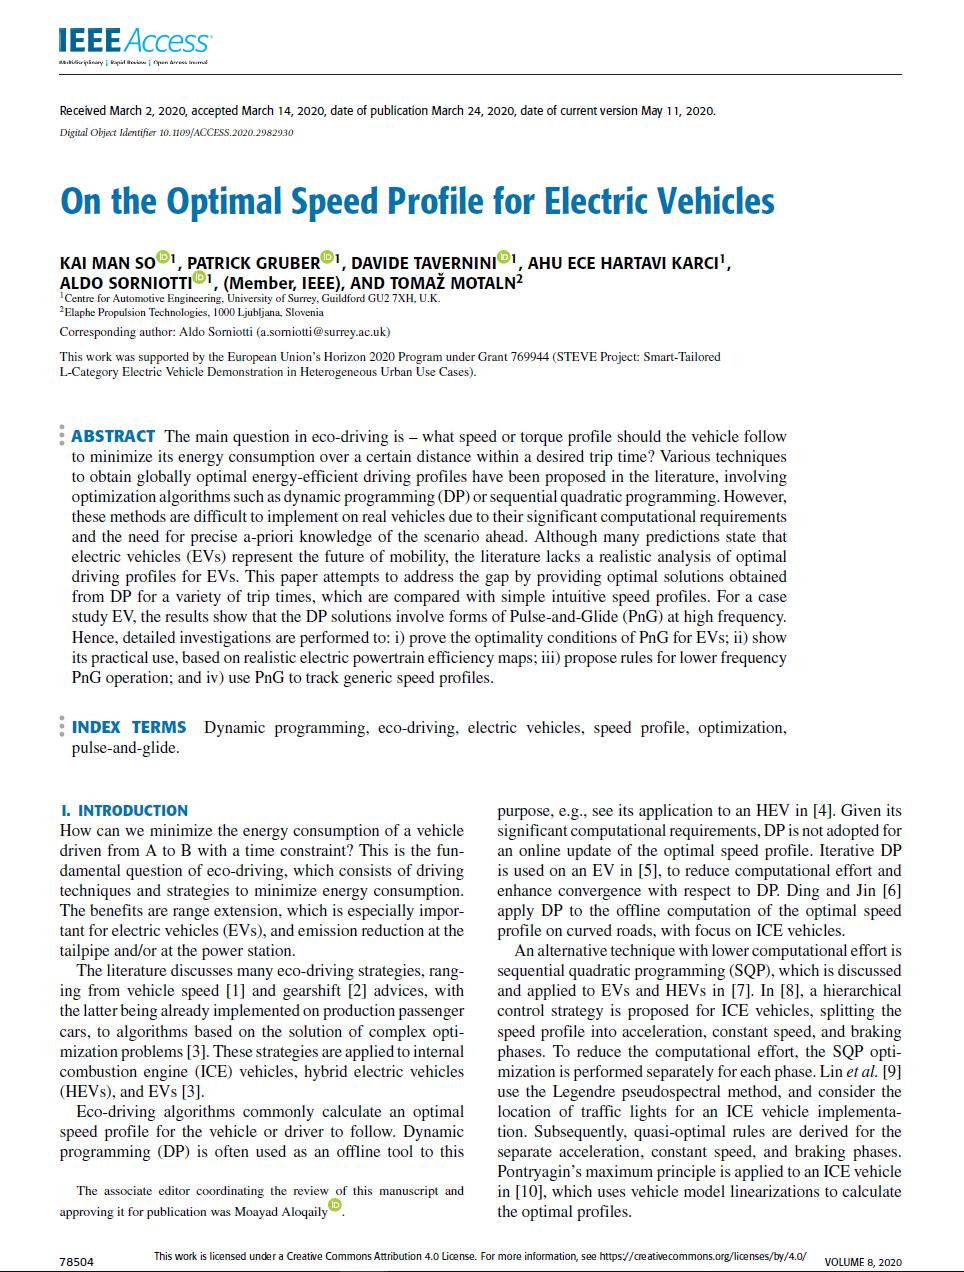 On the Optimal Speed Profile for Electric Vehicles